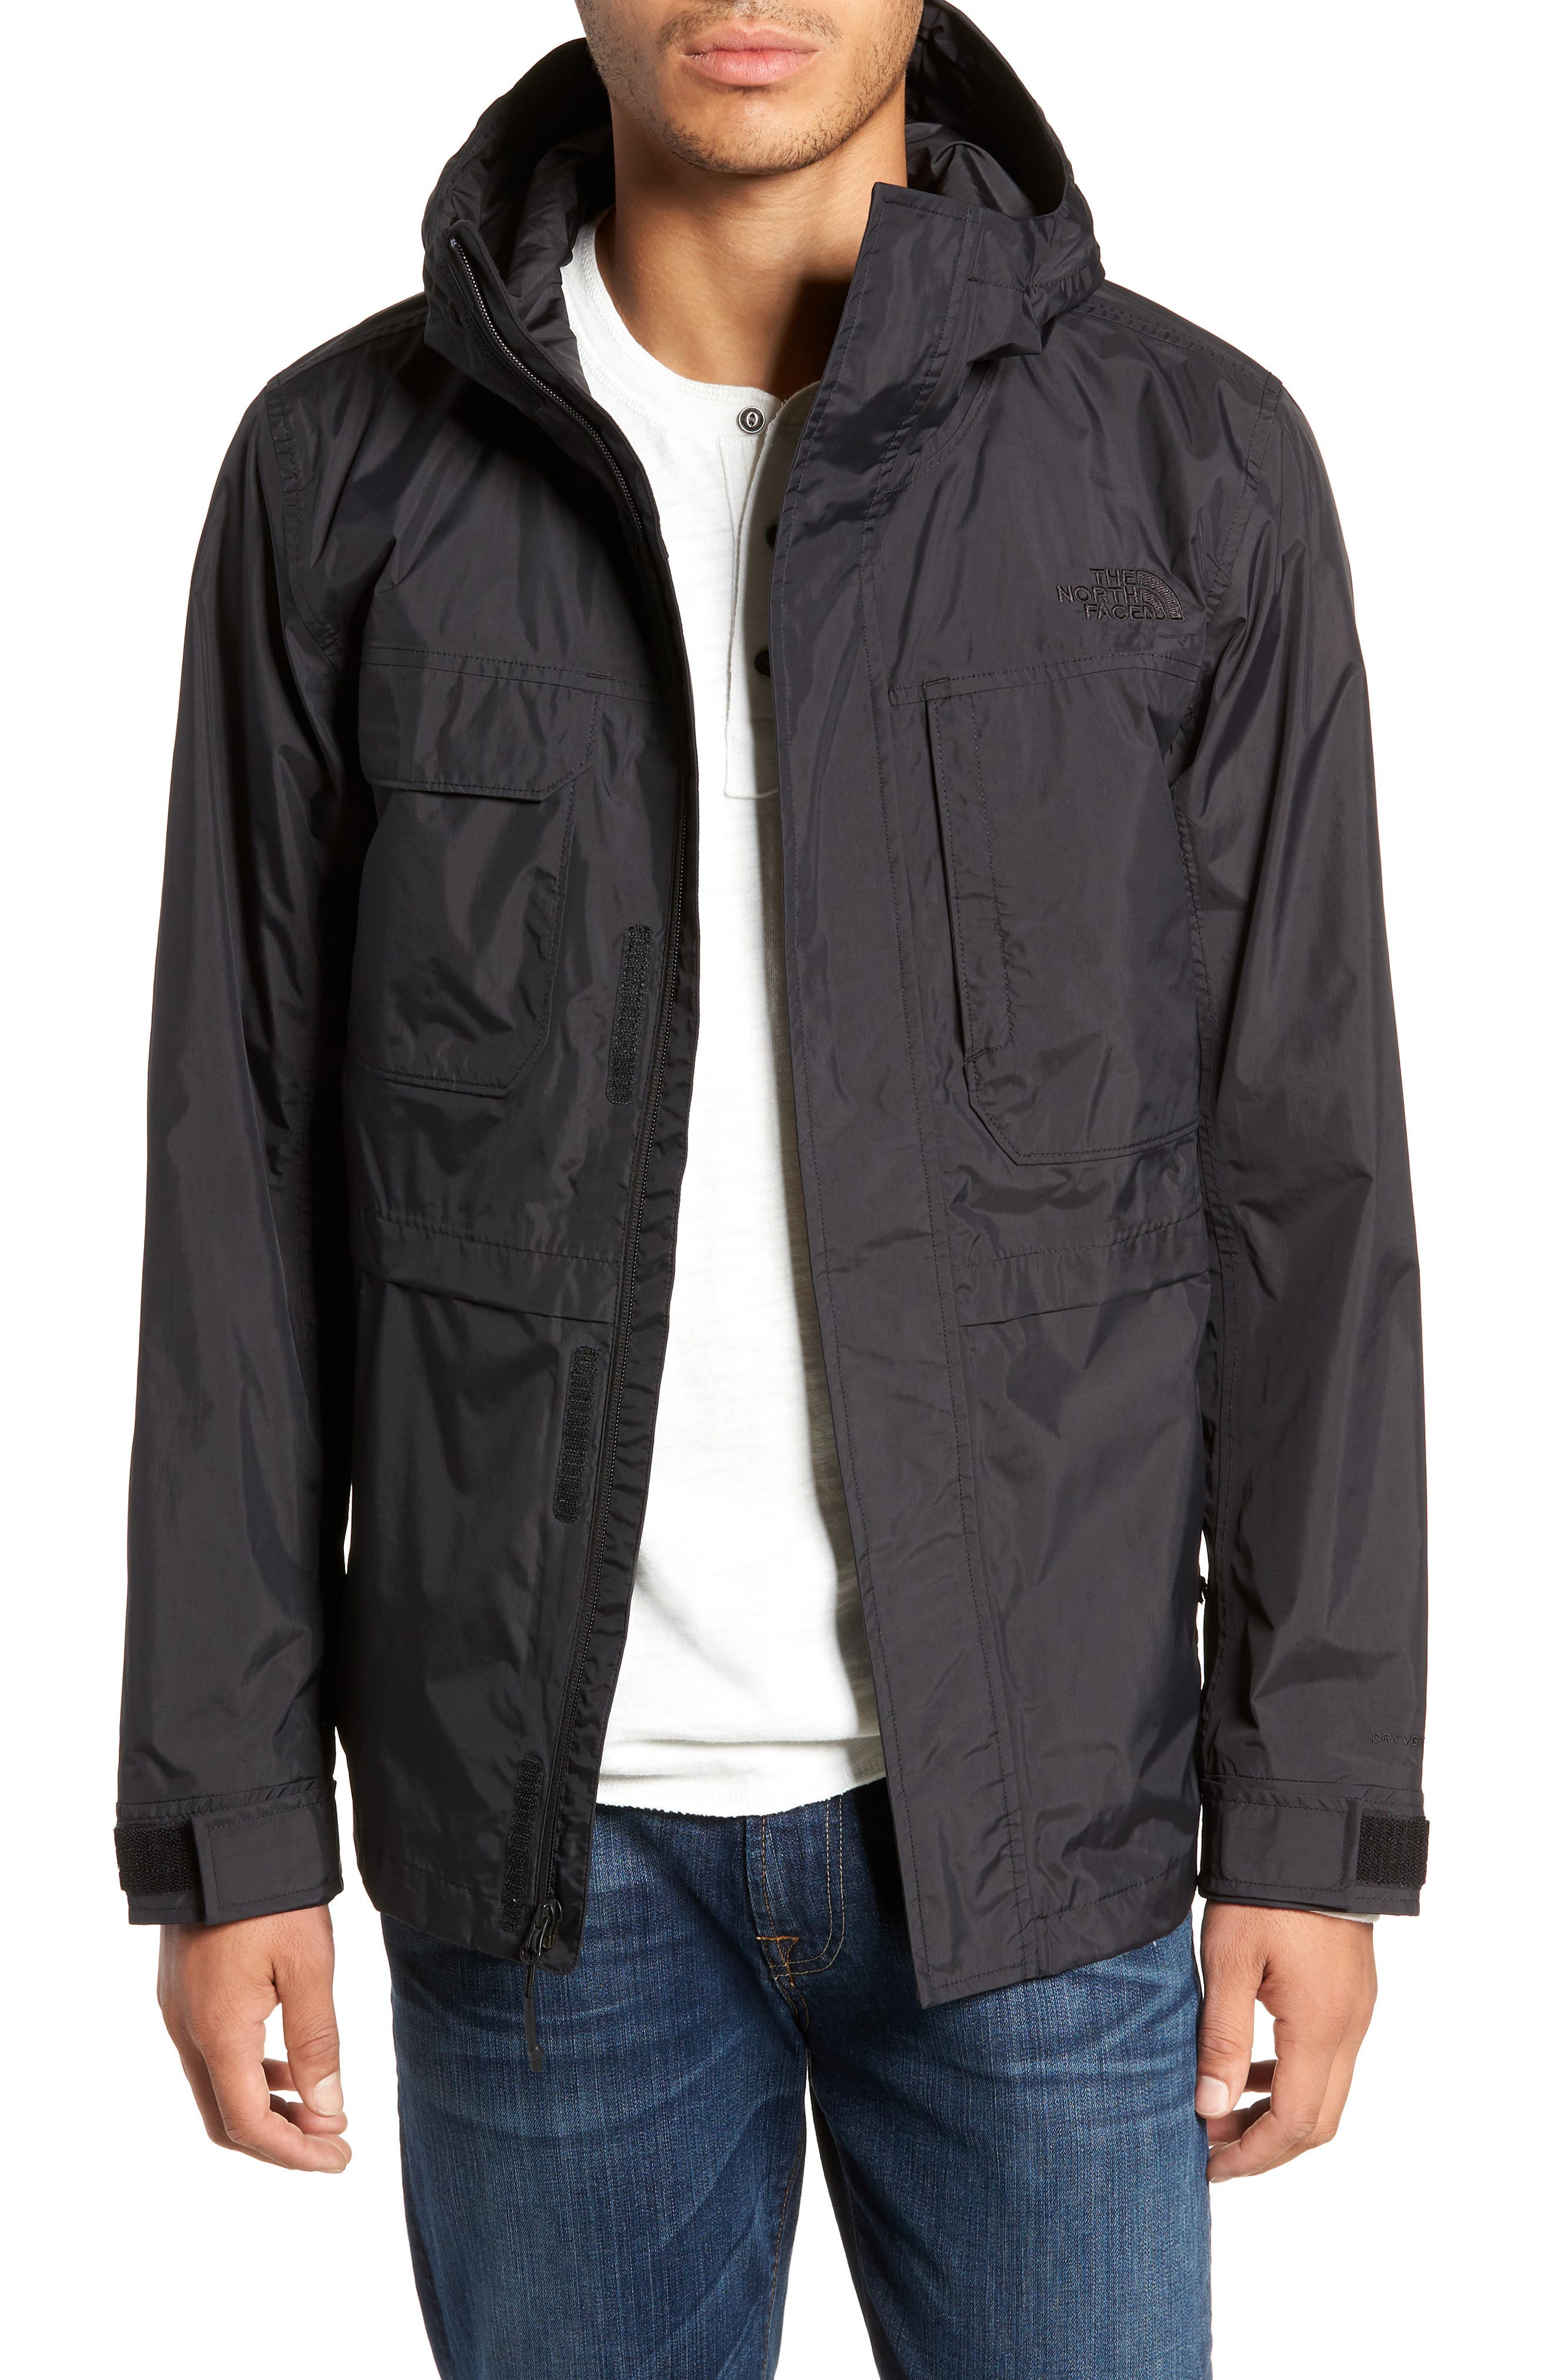 THE NORTH FACE, Zoomie Rain Jacket, Main thumbnail 1, color, 001